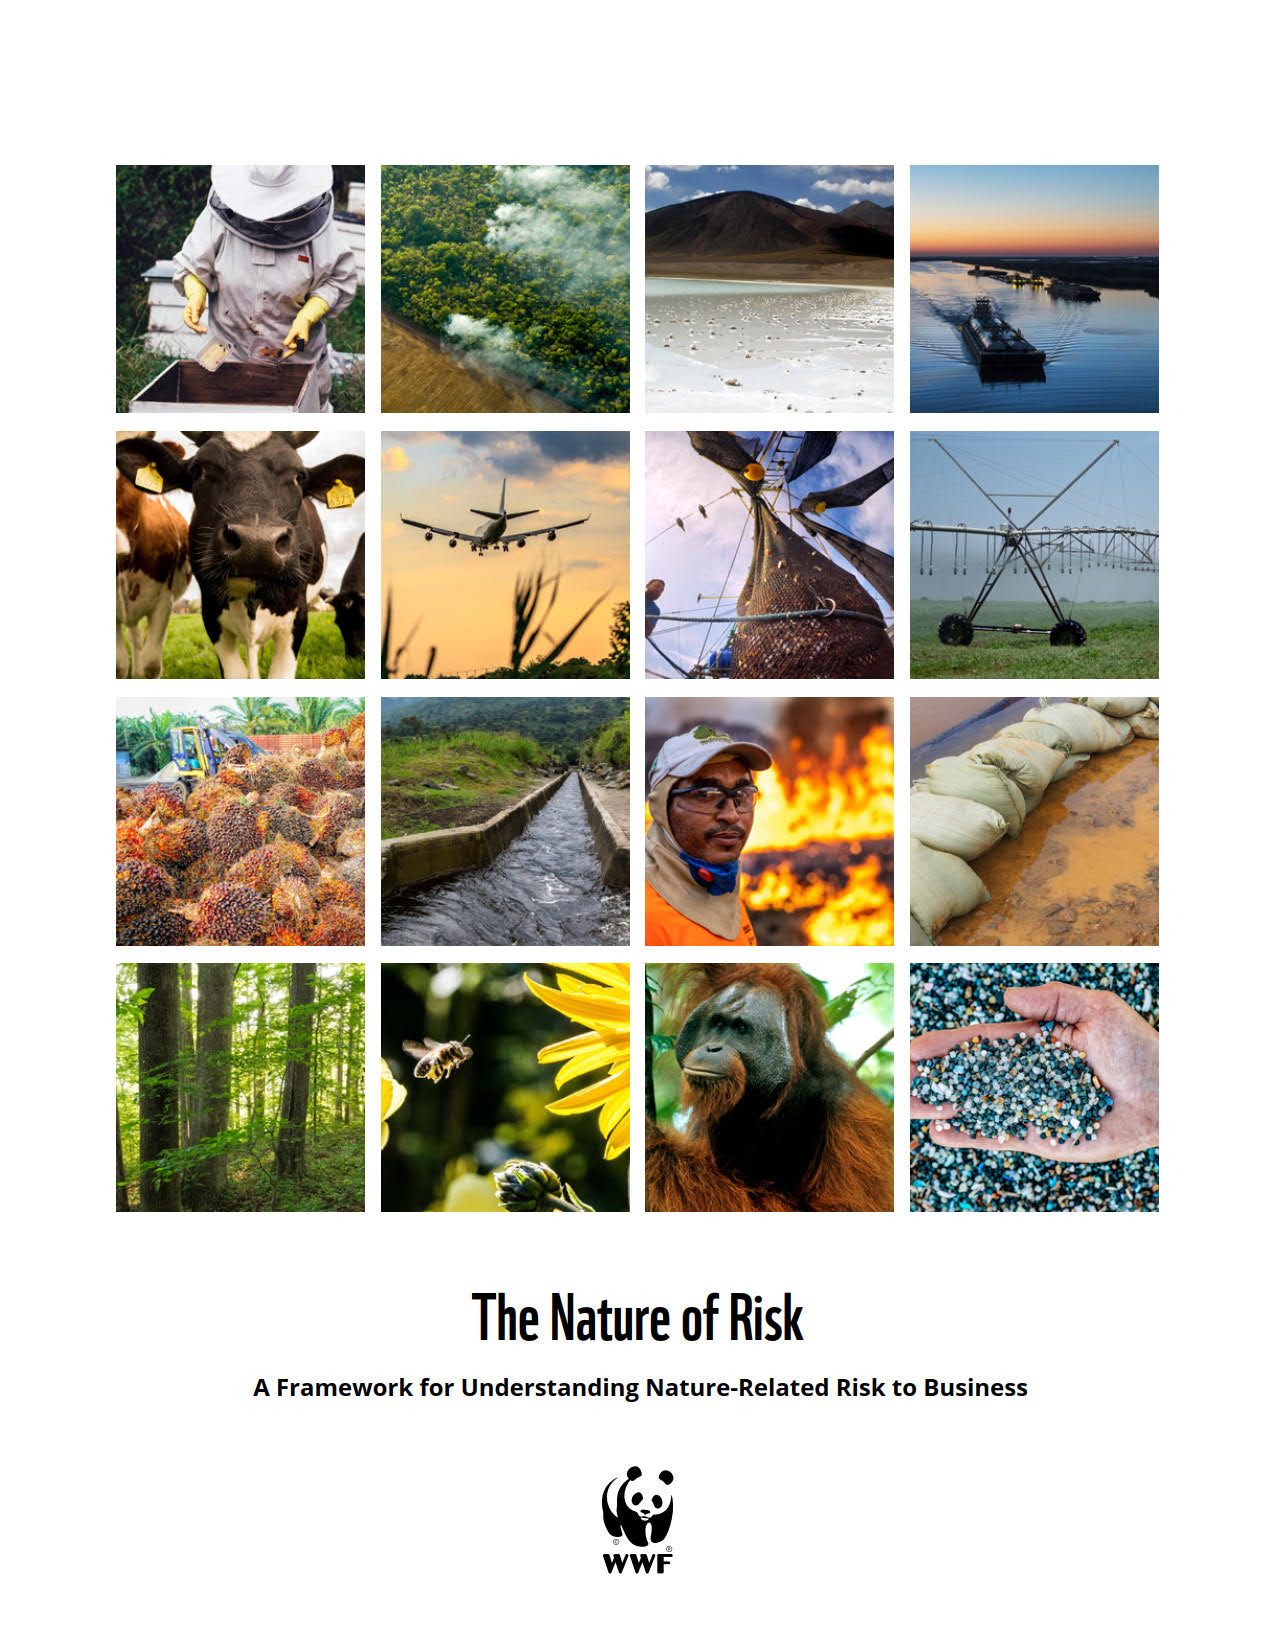 The Nature of Risk